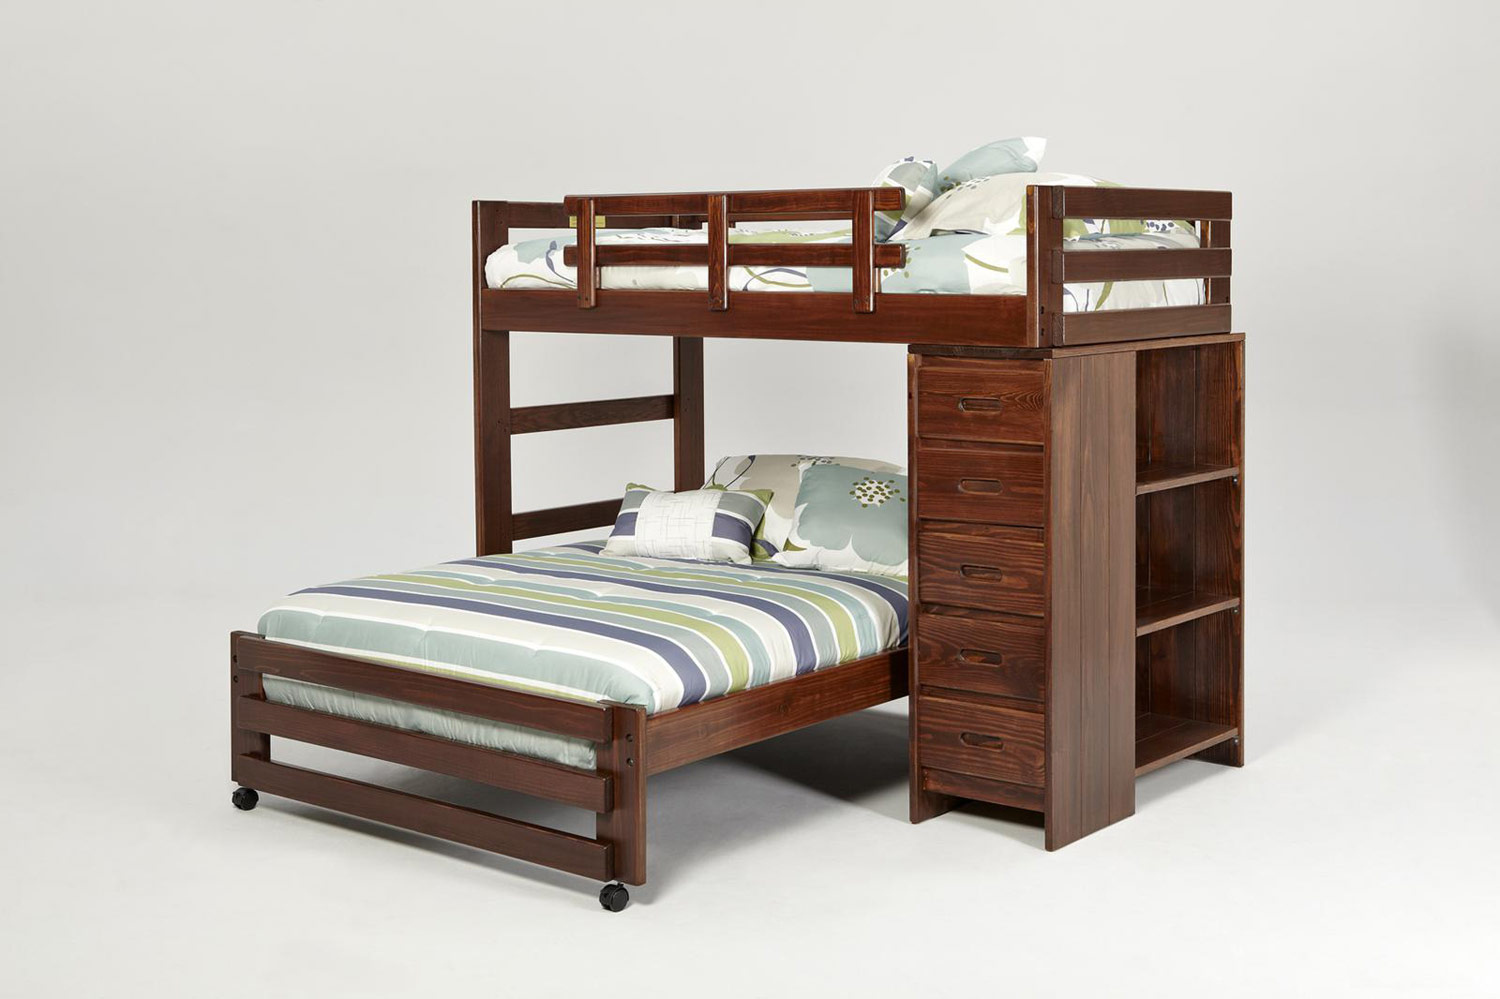 Chelsea Home 361550R Twin Over Full Loft with 5 Drawer Chest and Bookshelf End - Dark